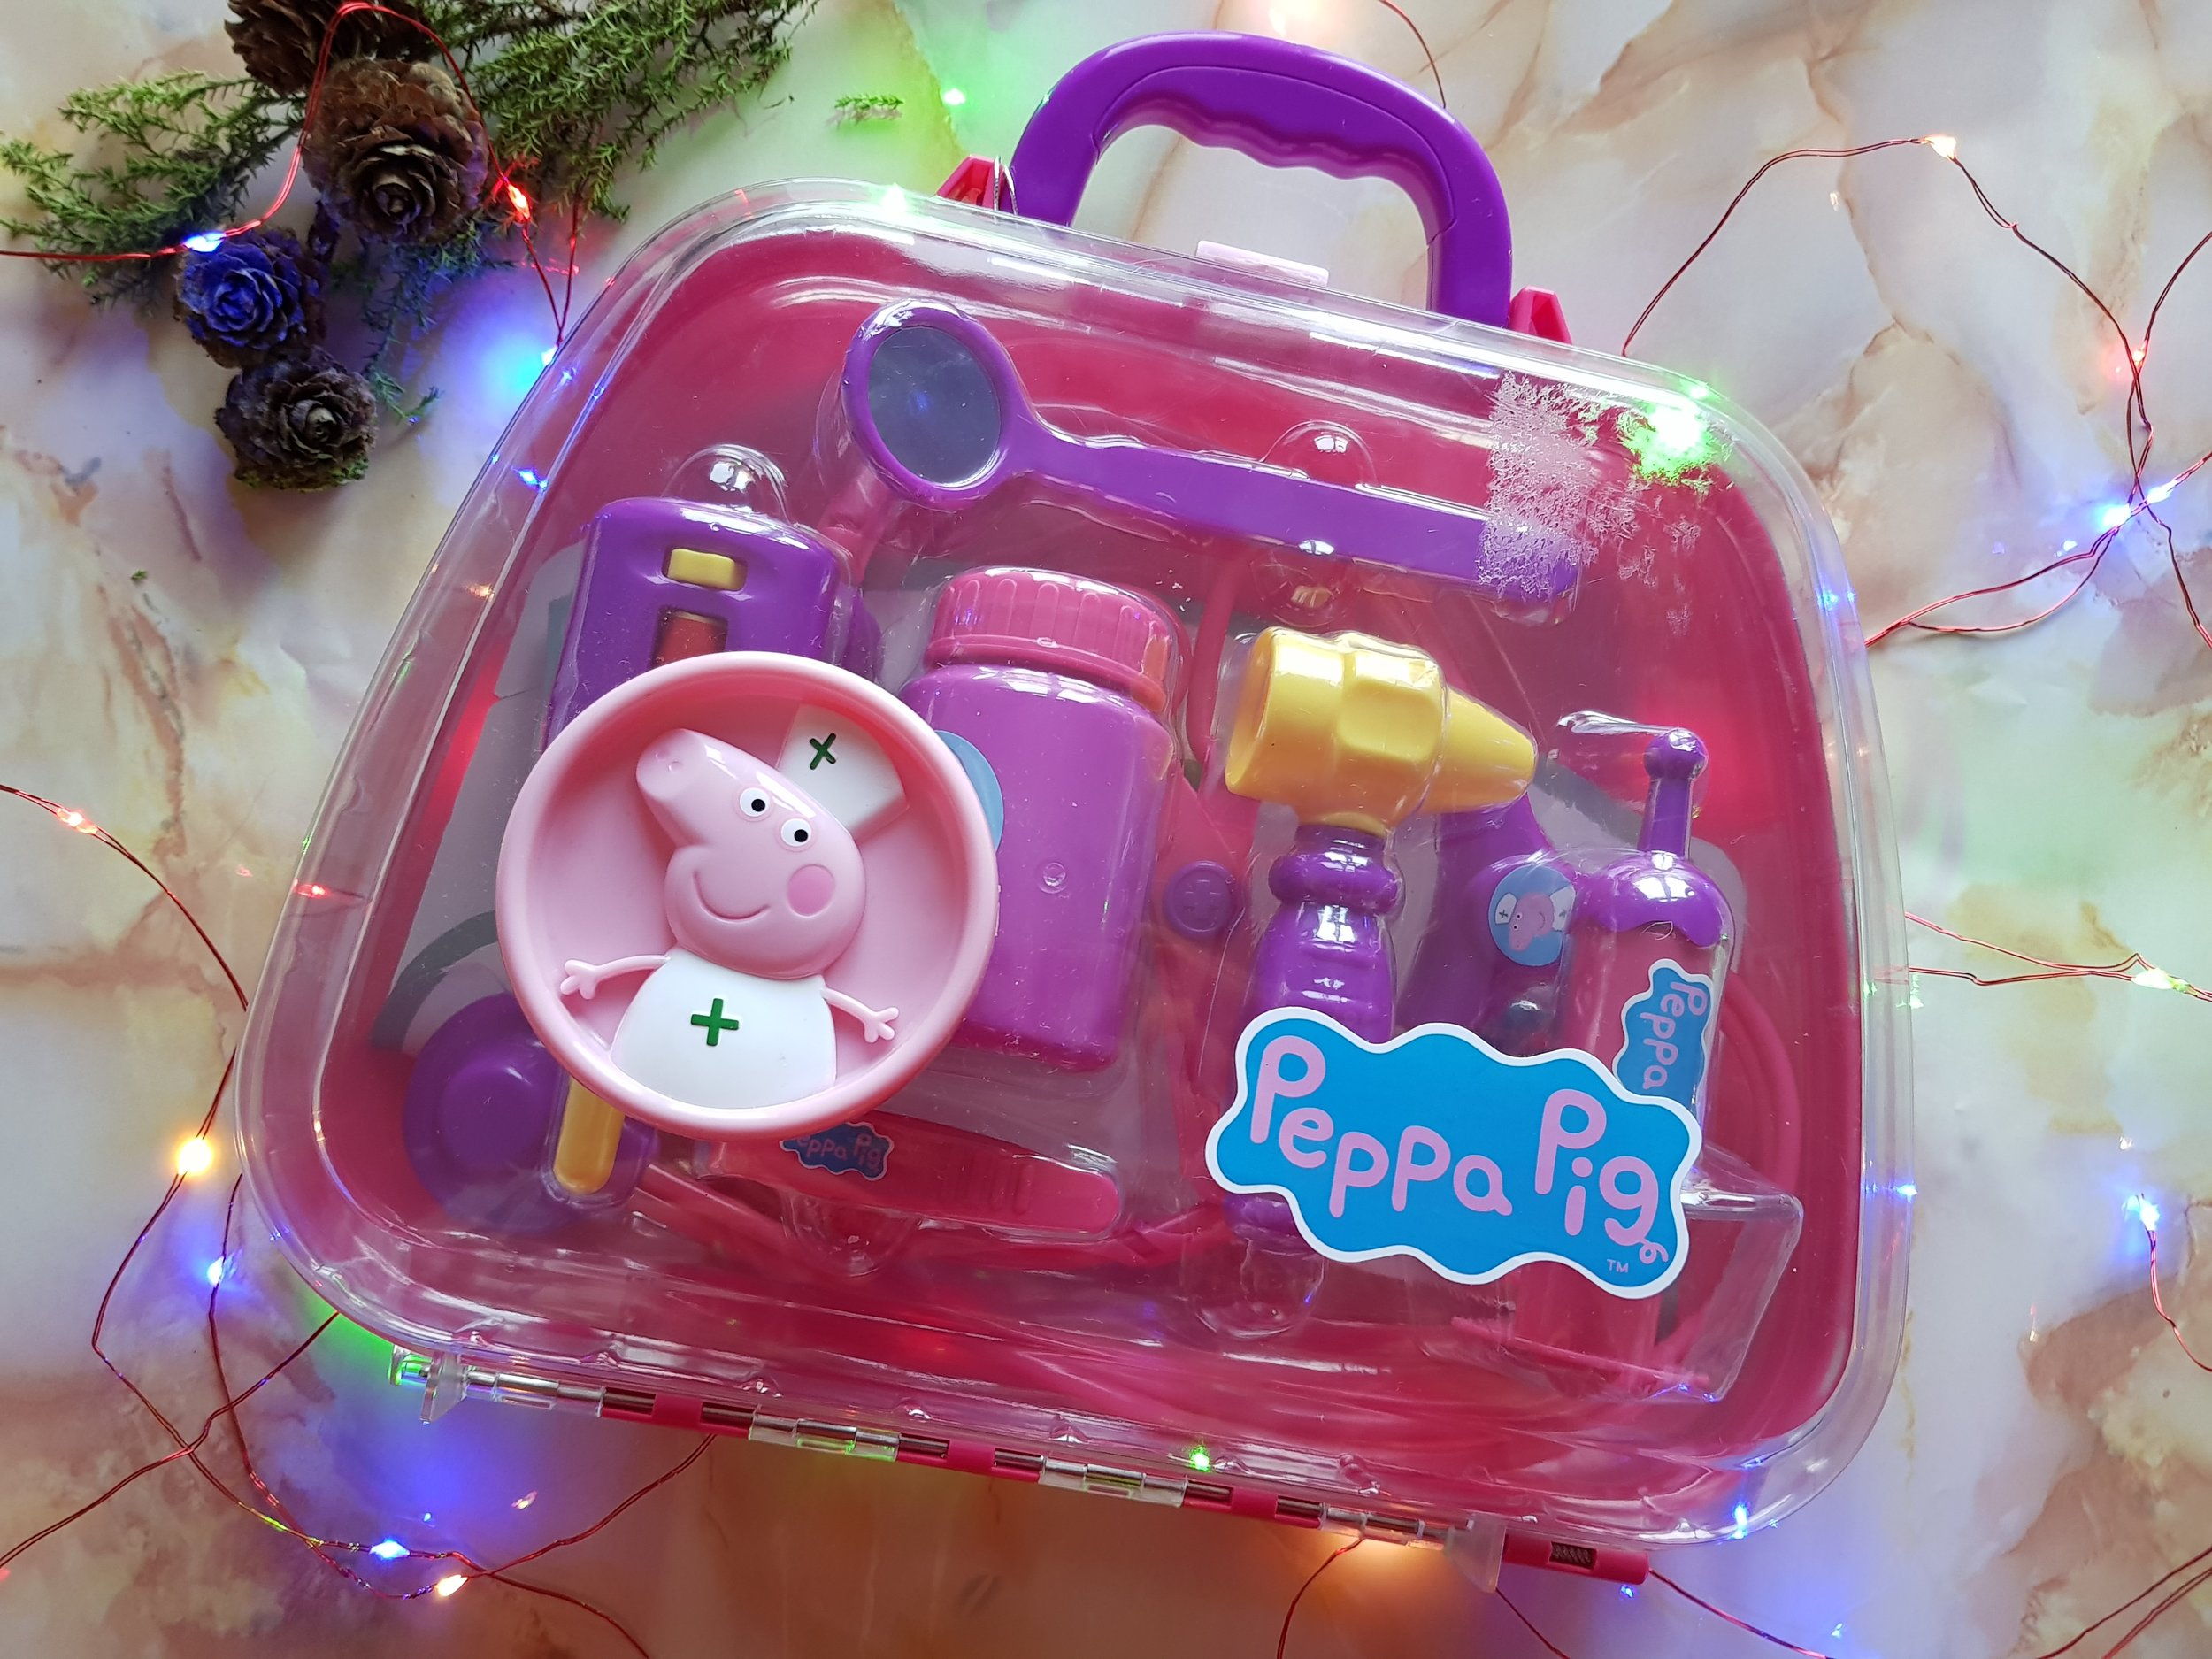 Peppa Pig Medical Kit Me Becoming Mum's Christmas Gifts for Two Year Olds